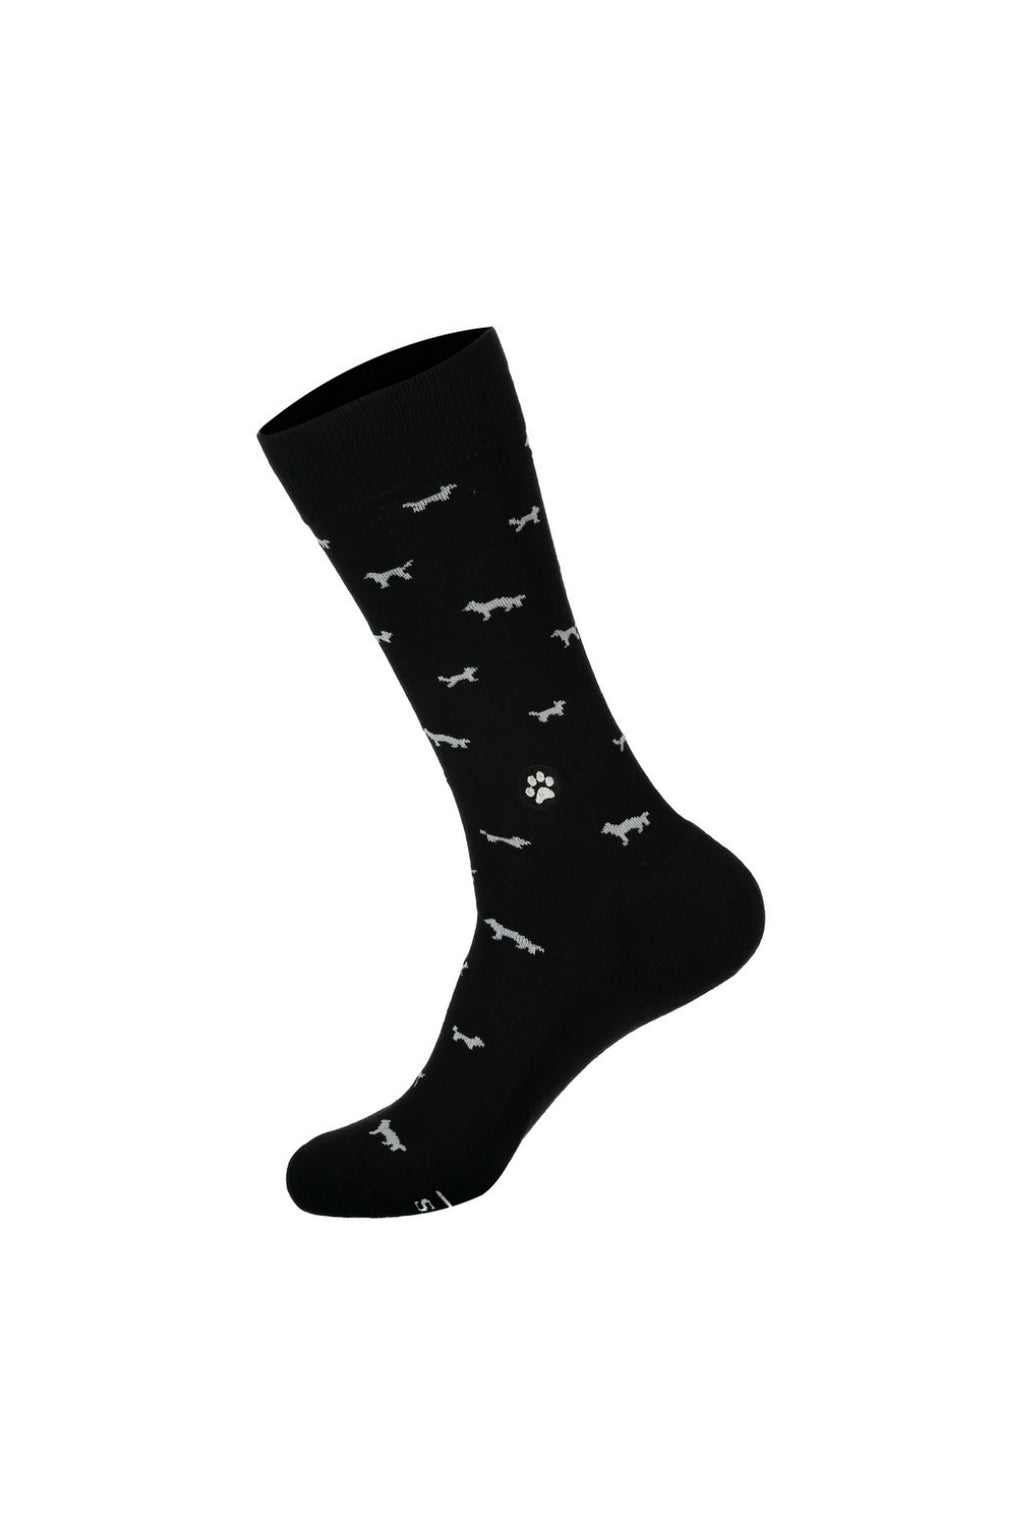 Conscious Step Socks that Save Dogs - Black